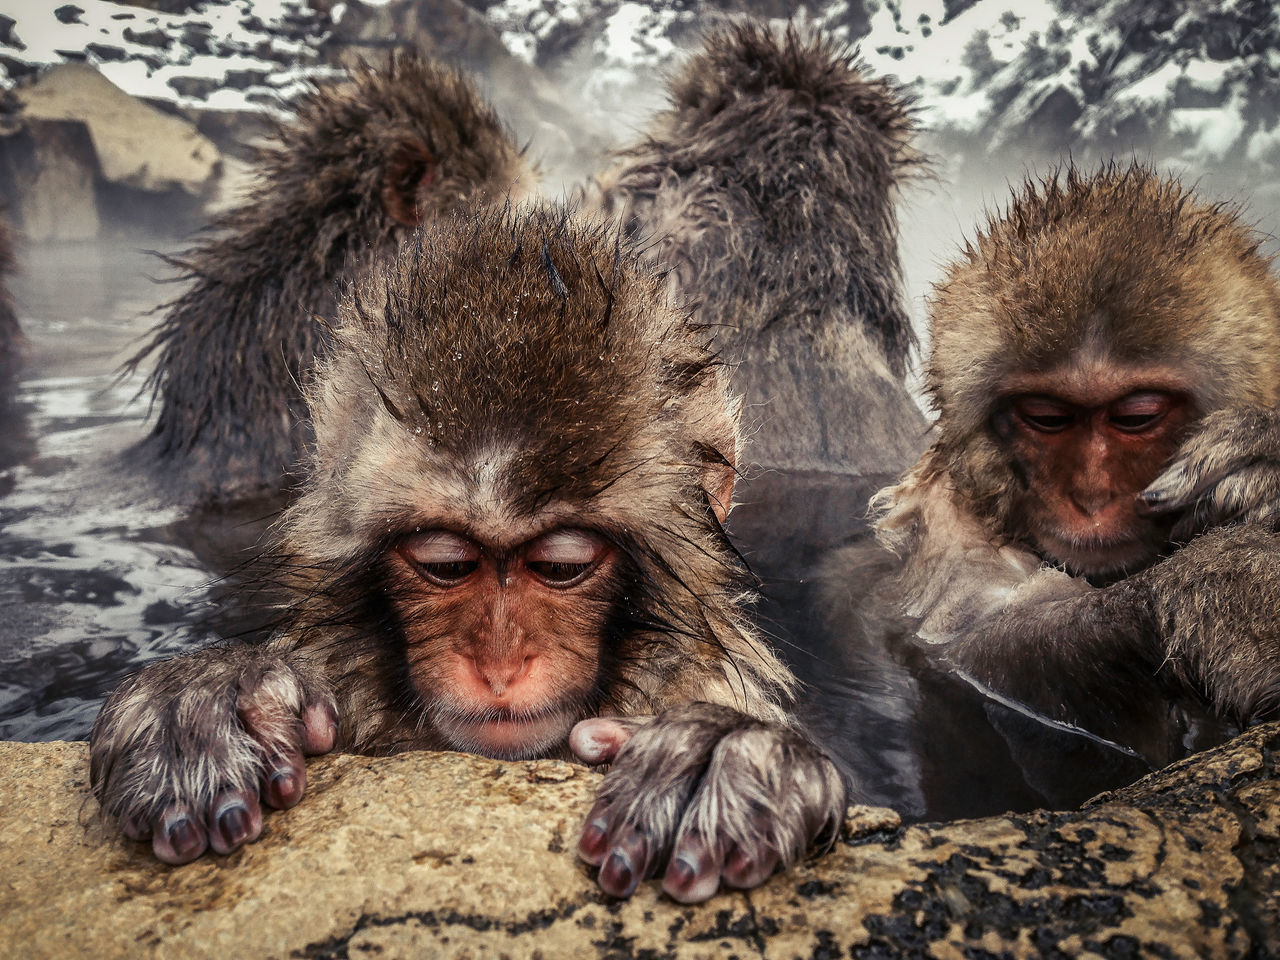 Monkey Snow Monkey Japanese Macaque Monkey Brothers IPhone IPhone5 IPhoneography Jigokudani Spa Nagano, Japan